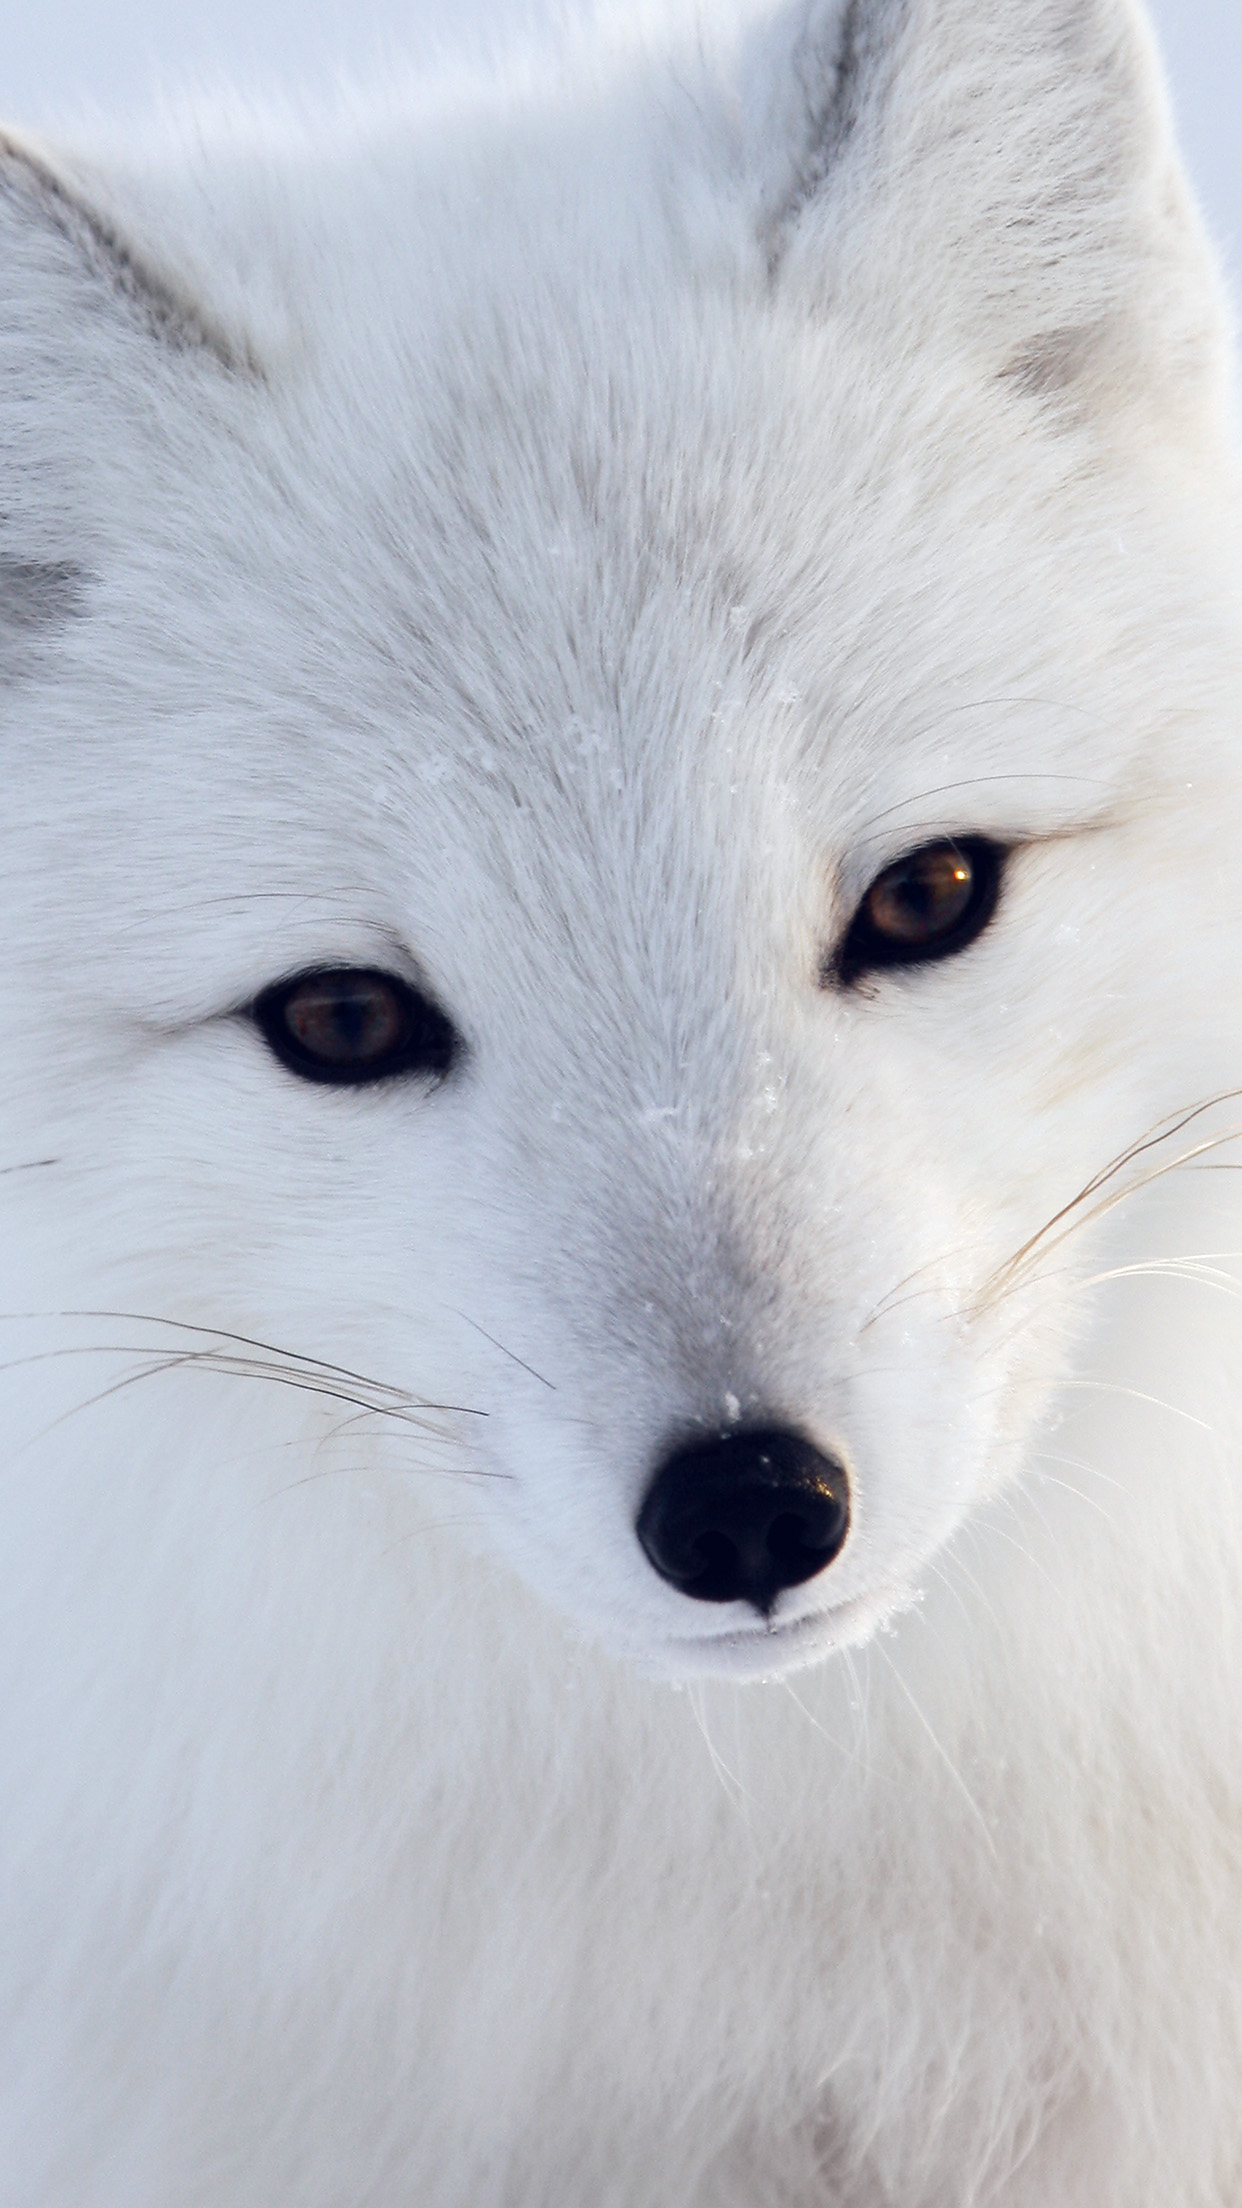 Cute Baby With Rain Wallpapers Papers Co Iphone Wallpaper Mu16 Artic Fox White Animal